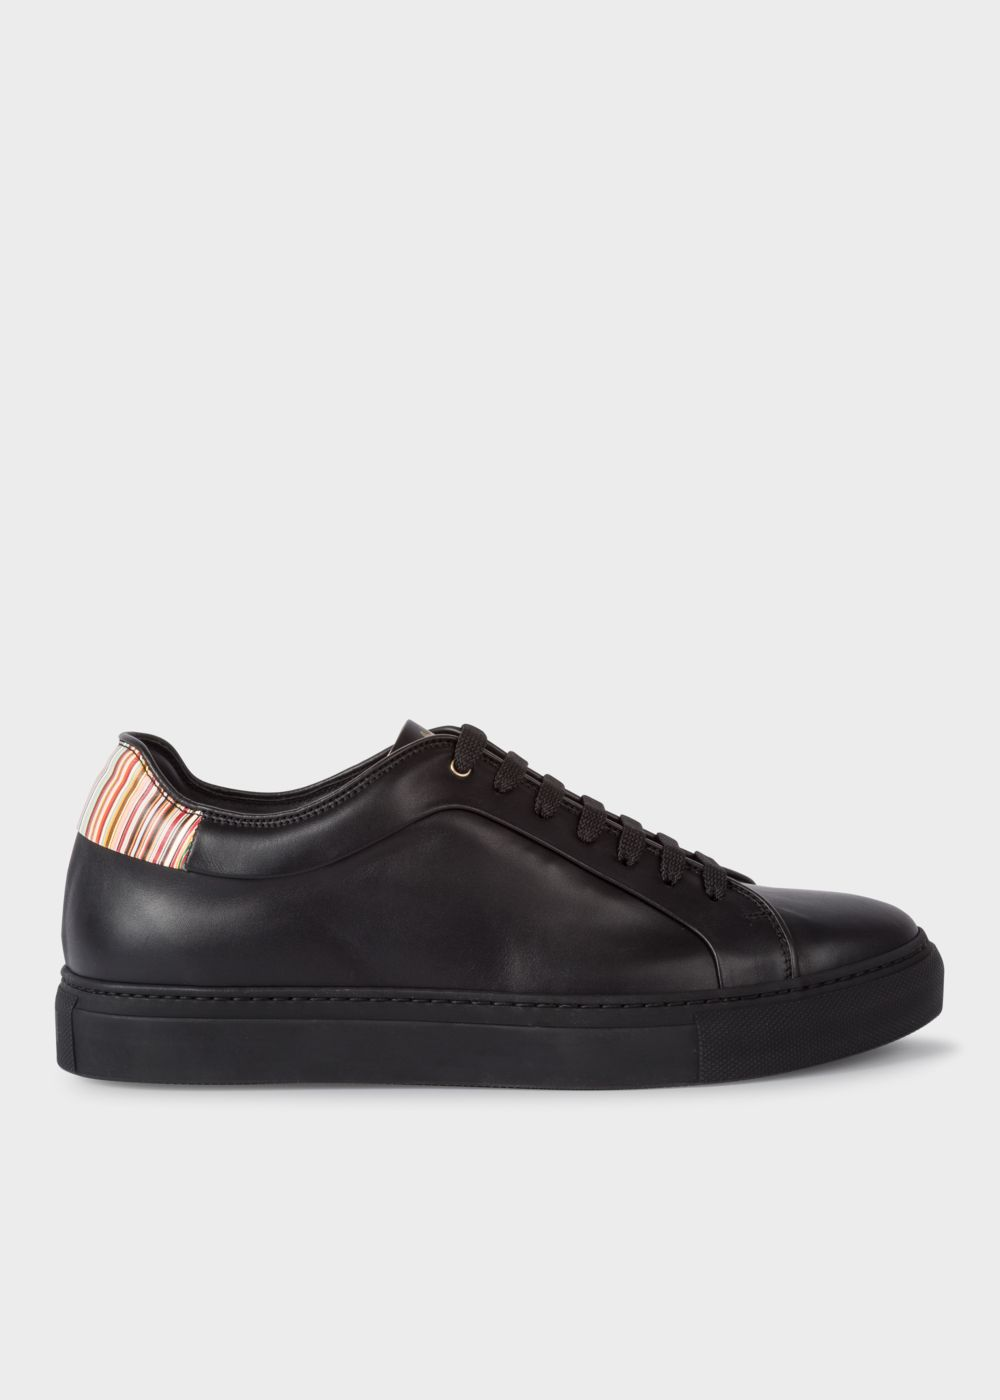 Paul Smith Men's Black Leather 'Basso' Trainers With Signature Stripe Trims